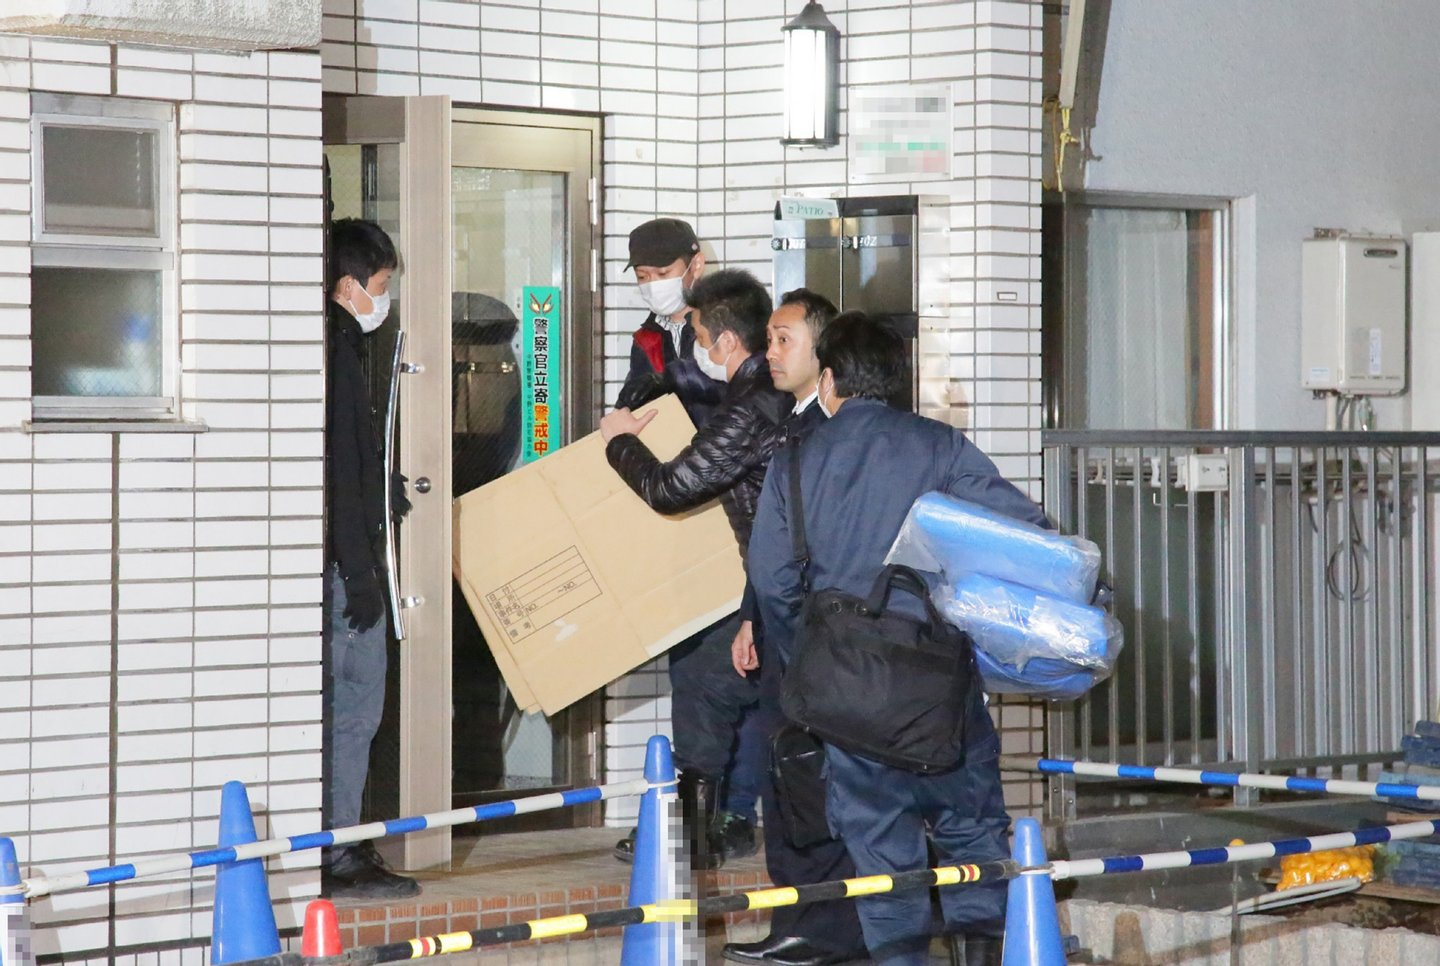 Police investigators enter an the apartment of the suspect believed to be lived with a girl in Tokyo on March 28, 2016. A Japanese girl who vanished two years ago has returned home after escaping from the apartment of the university student who had held her captive, police and local media said March 28. / AFP / JIJI PRESS / JIJI PRESS (Photo credit should read JIJI PRESS/AFP/Getty Images)